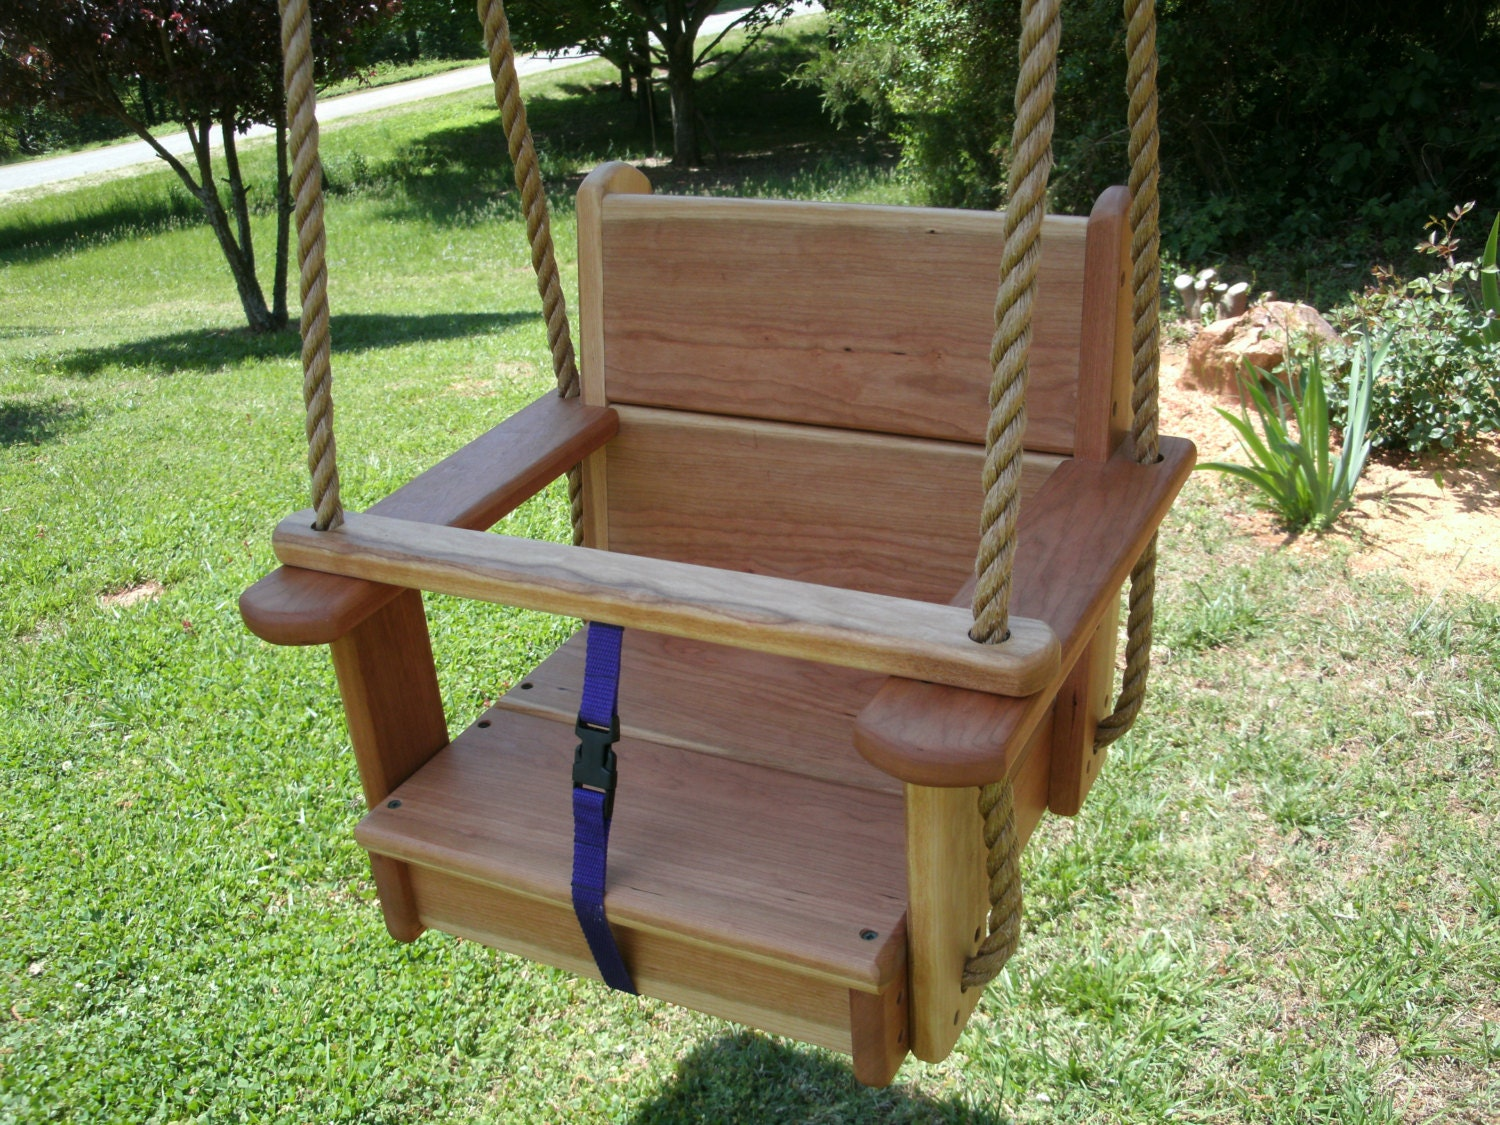 Wood tree swings cherry toddler seat for How to make wooden swing seat